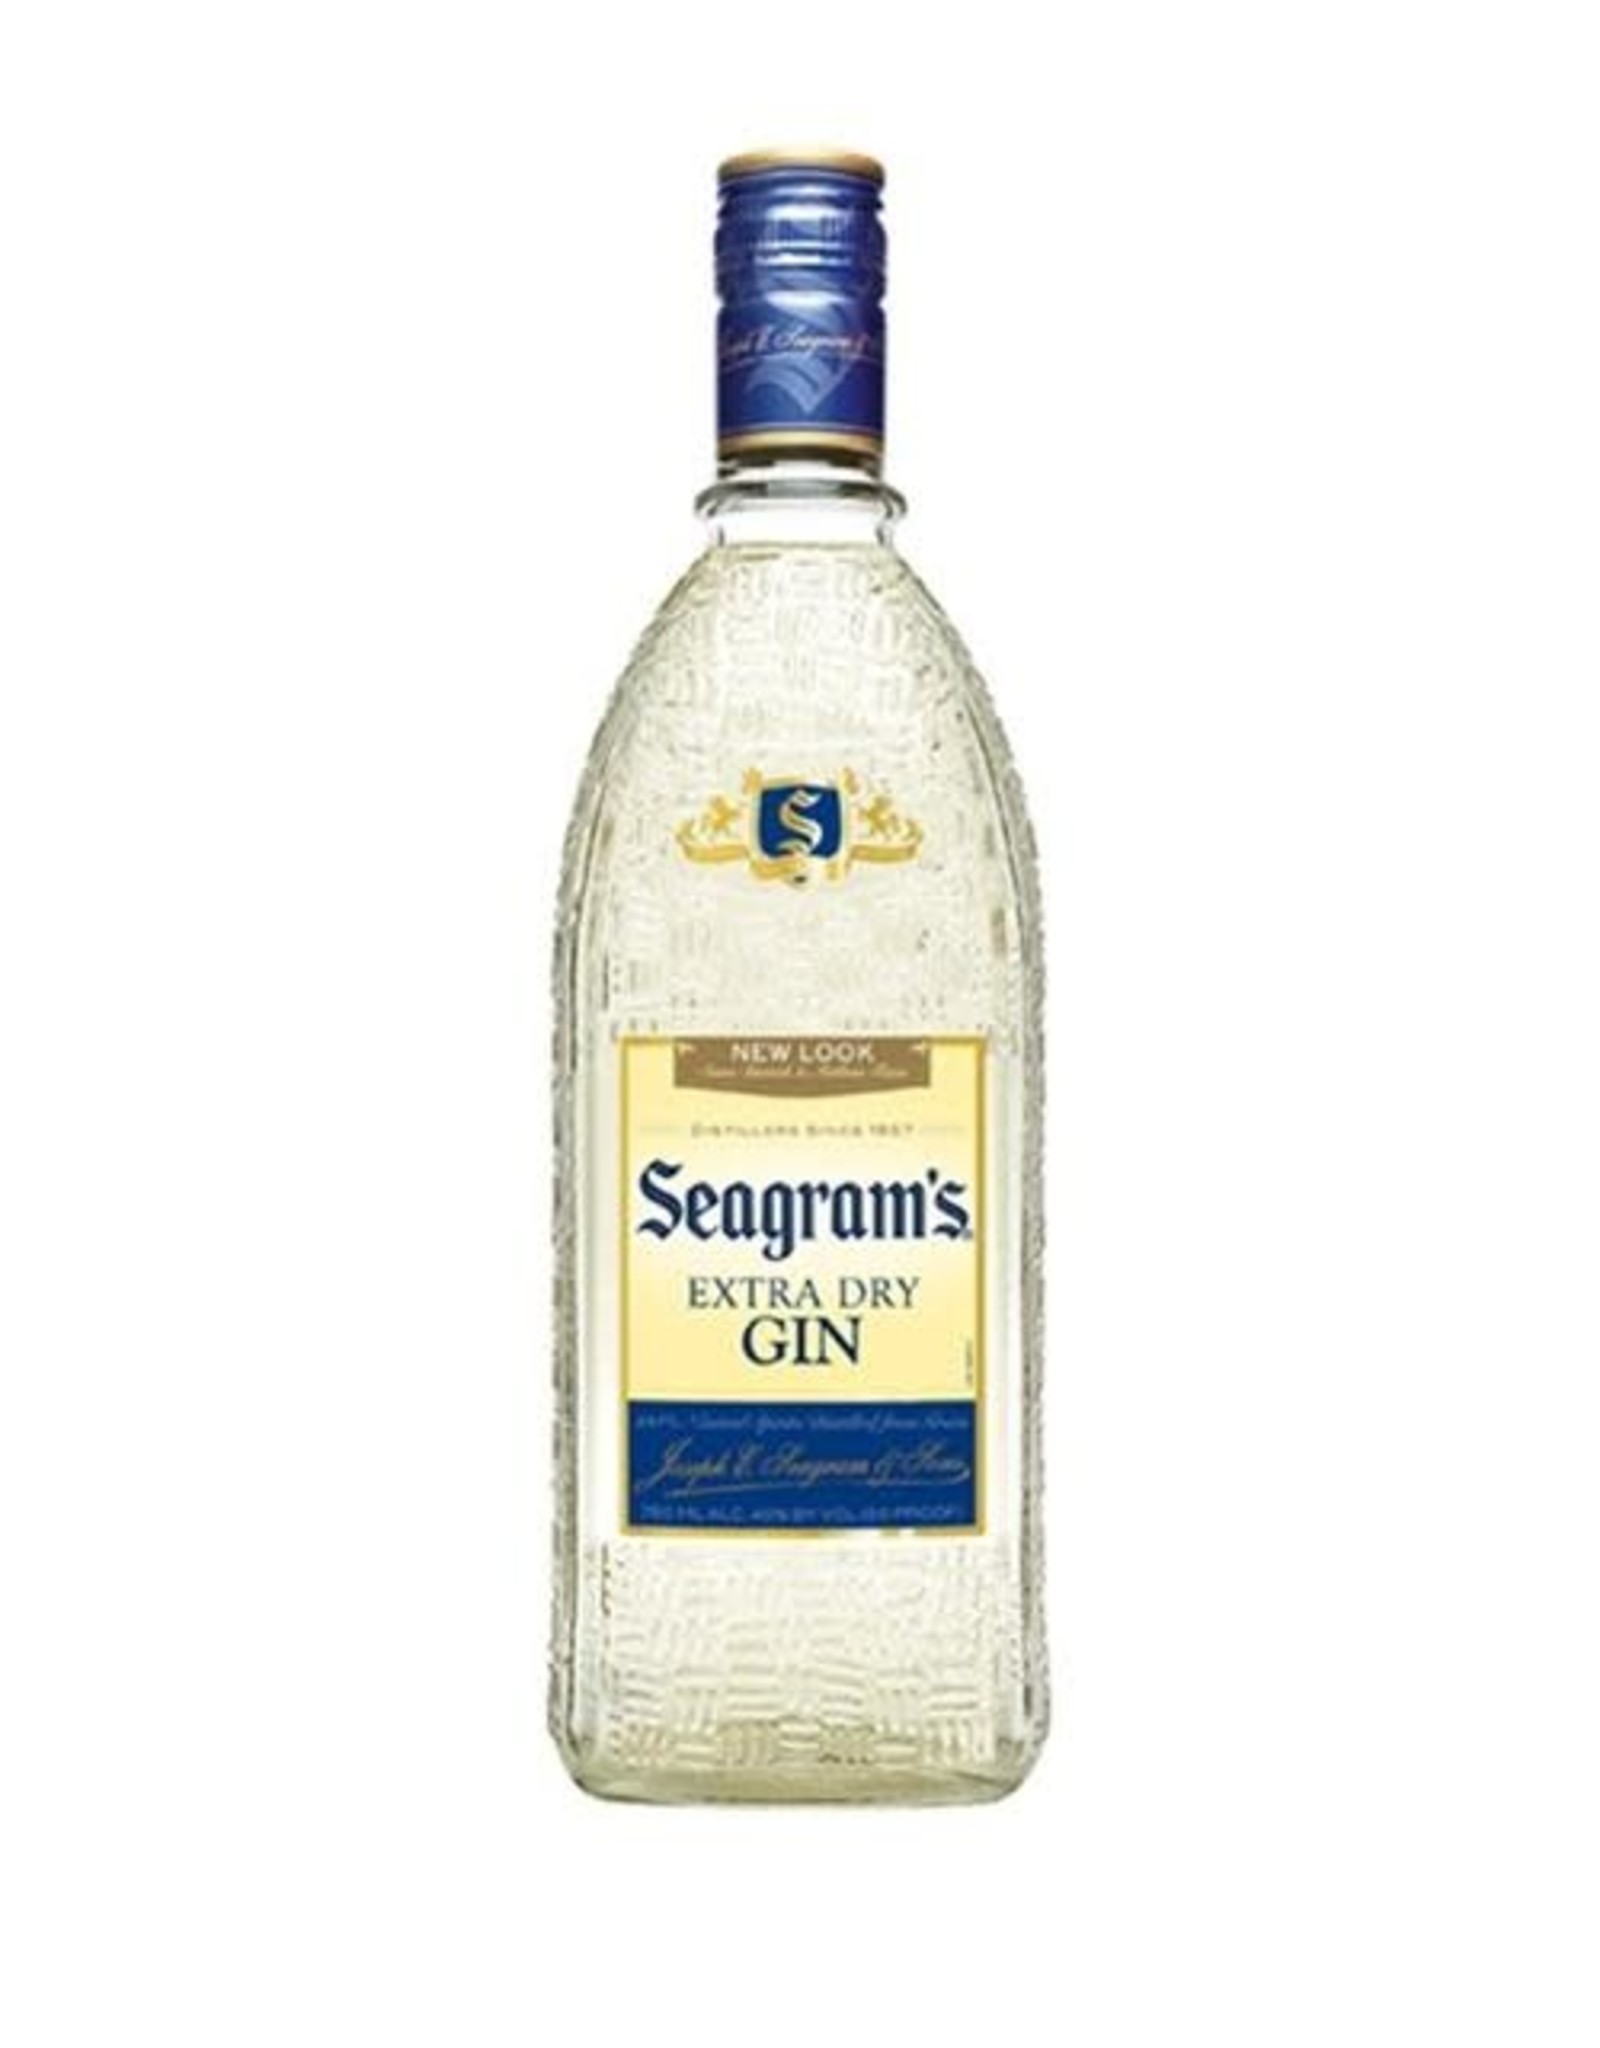 SEAGRAMS EXTRA DRY GIN 750M